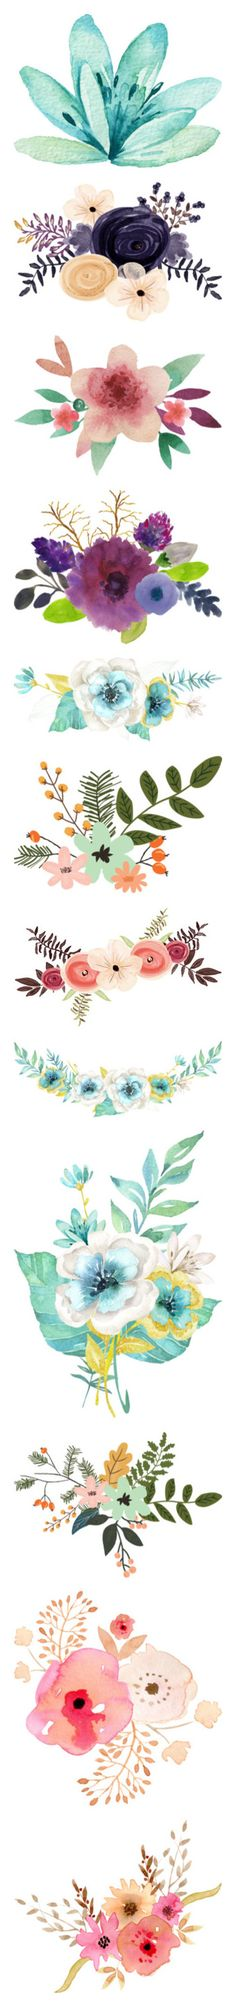 """Watercolor Bits & Botanicals"" by awsewell ❤ liked on Polyvore featuring flowers, backgrounds, fillers, extras, blue, detail, embellishment, decorations, floral and effect"